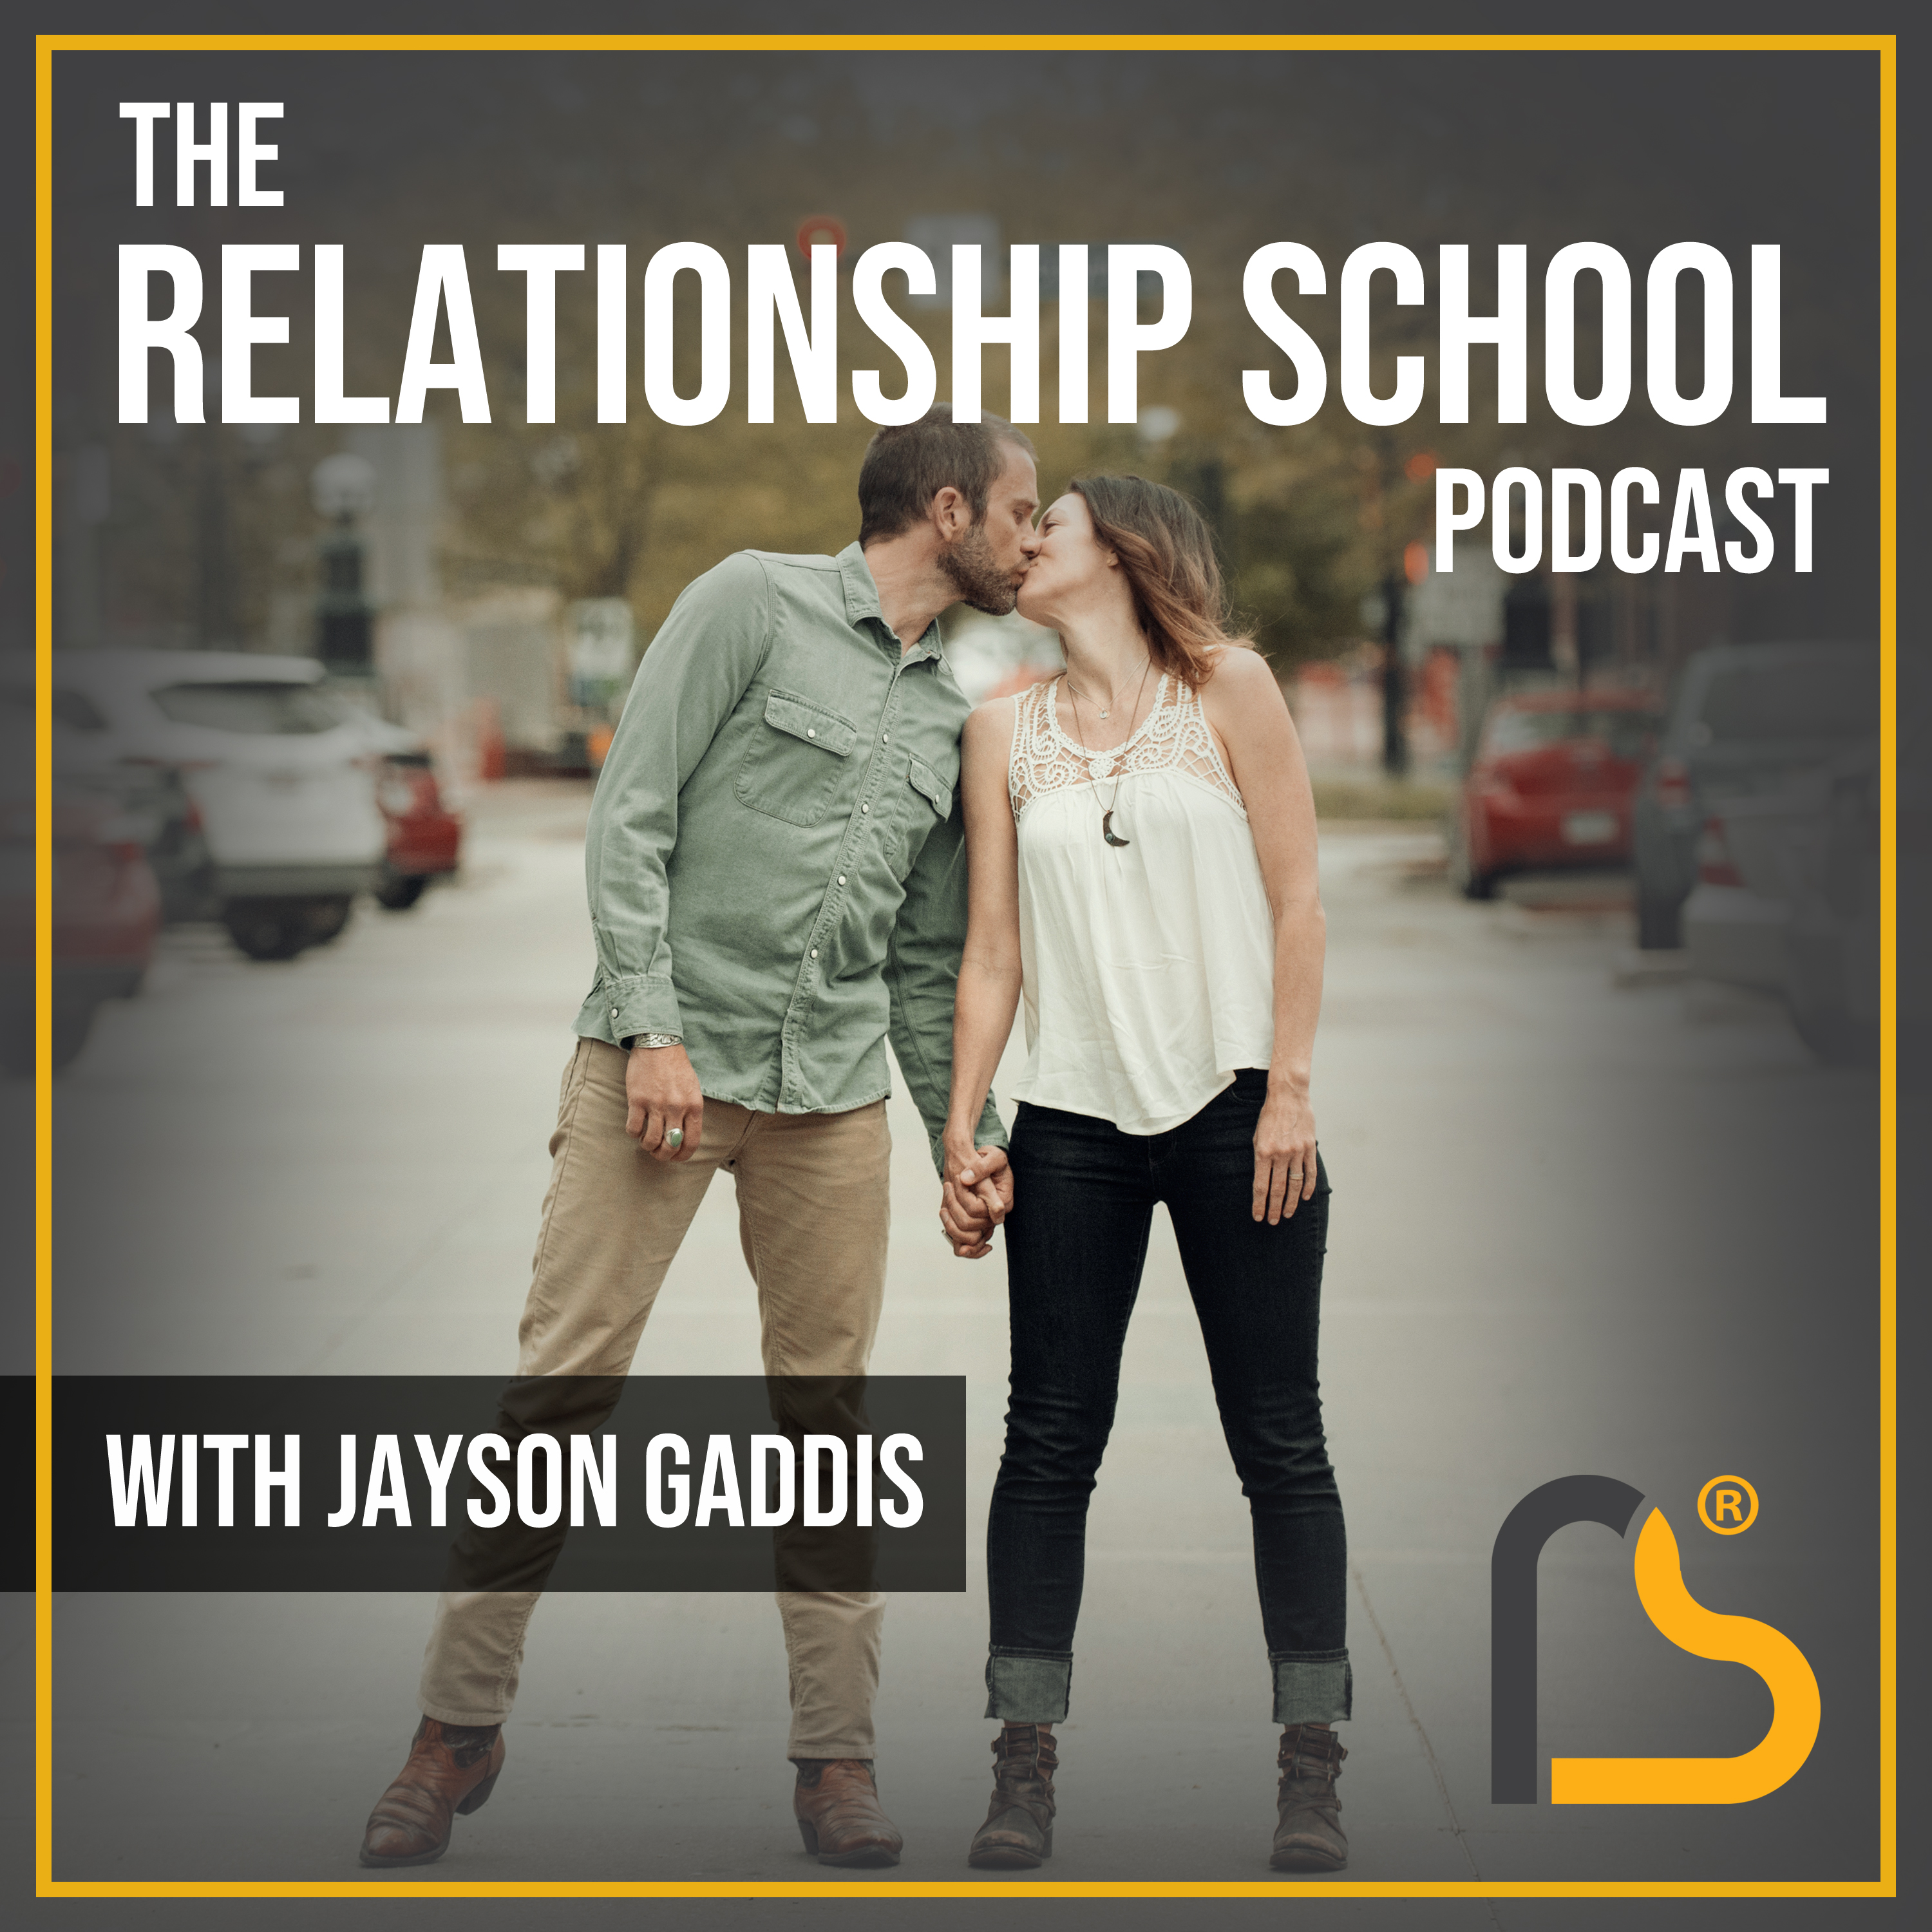 The Relationship School Podcast - How To Help Someone Who Doesn't Take Action - Relationship School Podcast EPISODE 267